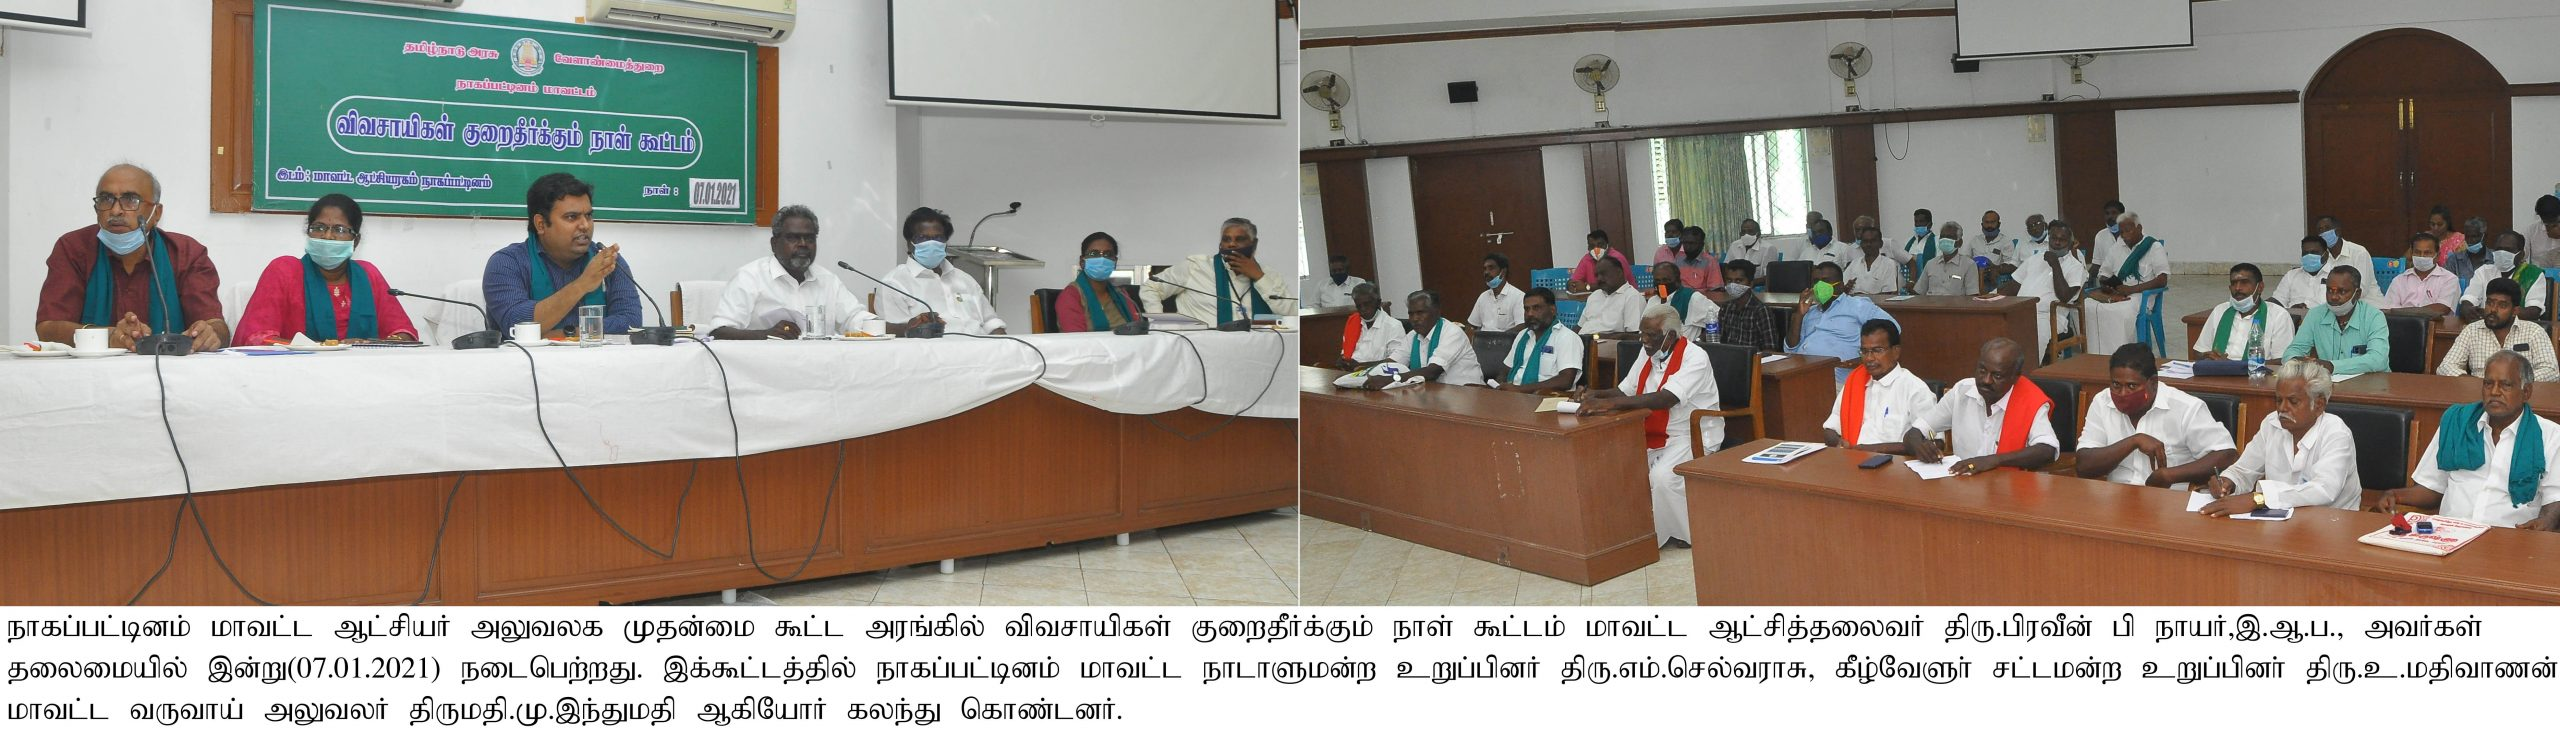 FORMERS GRIEVANCE DAY MEETING - 07.01.201